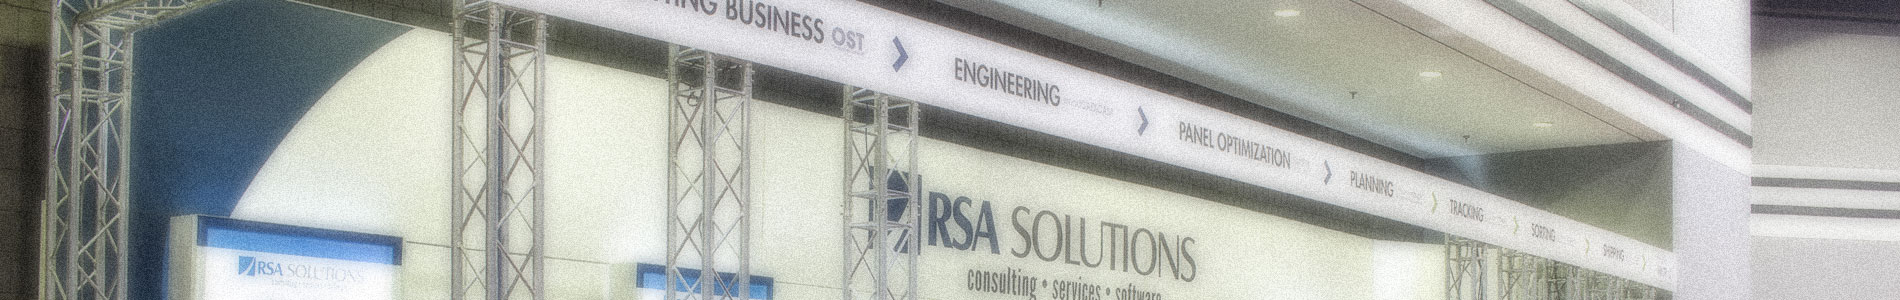 RSA Solutions About Us